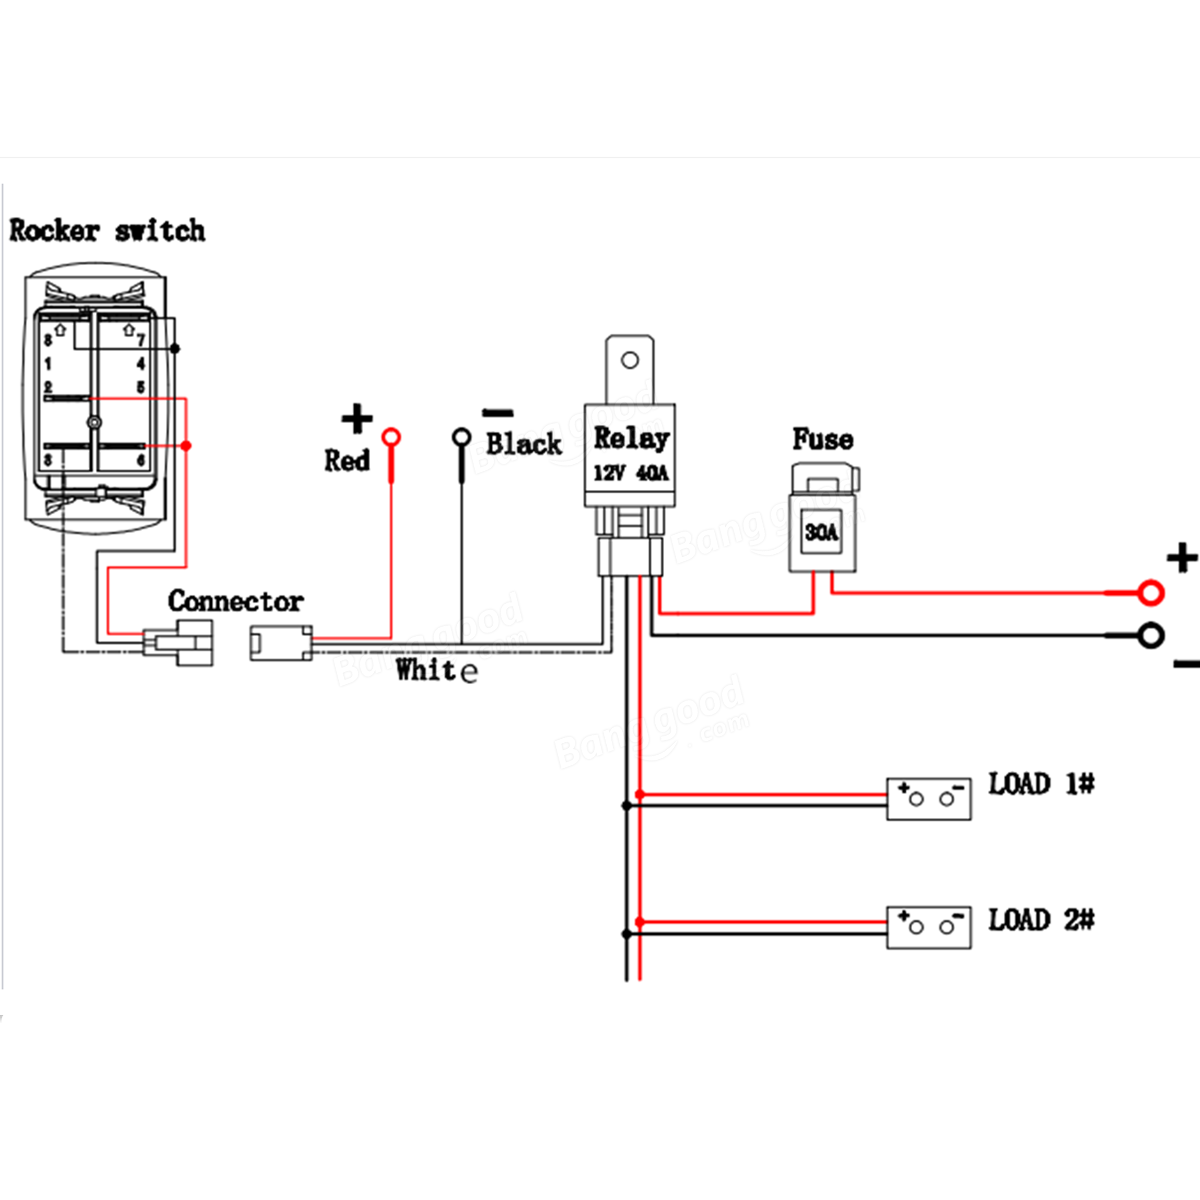 9d6bacef 8f68 448c b477 28191a6abe22 led wiring diagram with relay led free wiring diagrams ge rr7 relay wiring diagram at gsmx.co